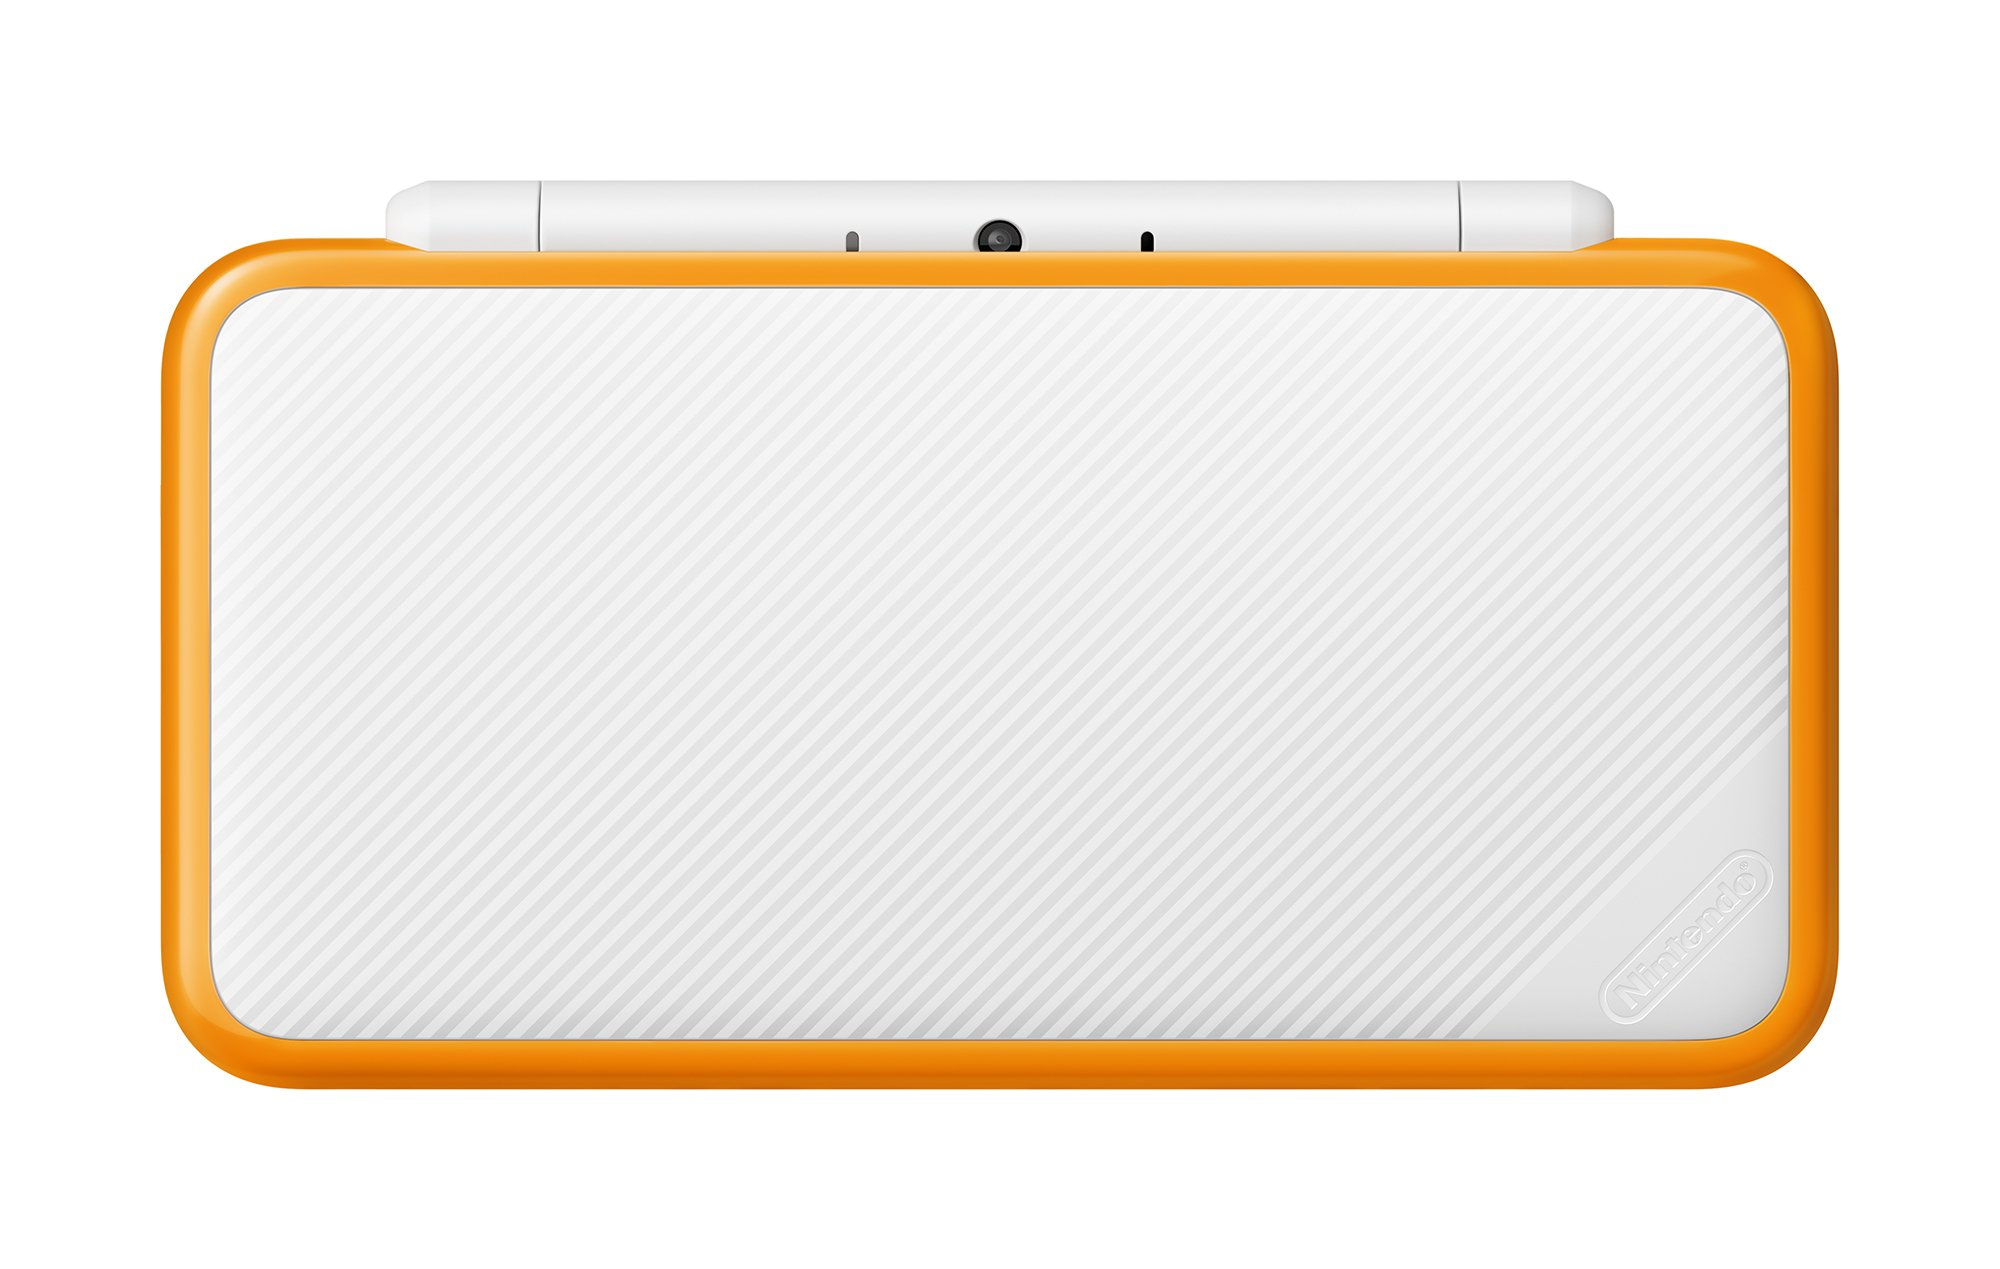 New Nintendo 2DS XL Handheld Game Console - Orange + White With Mario Kart 7 Pre-installed - Nintendo 2DS by Nintendo (Image #4)